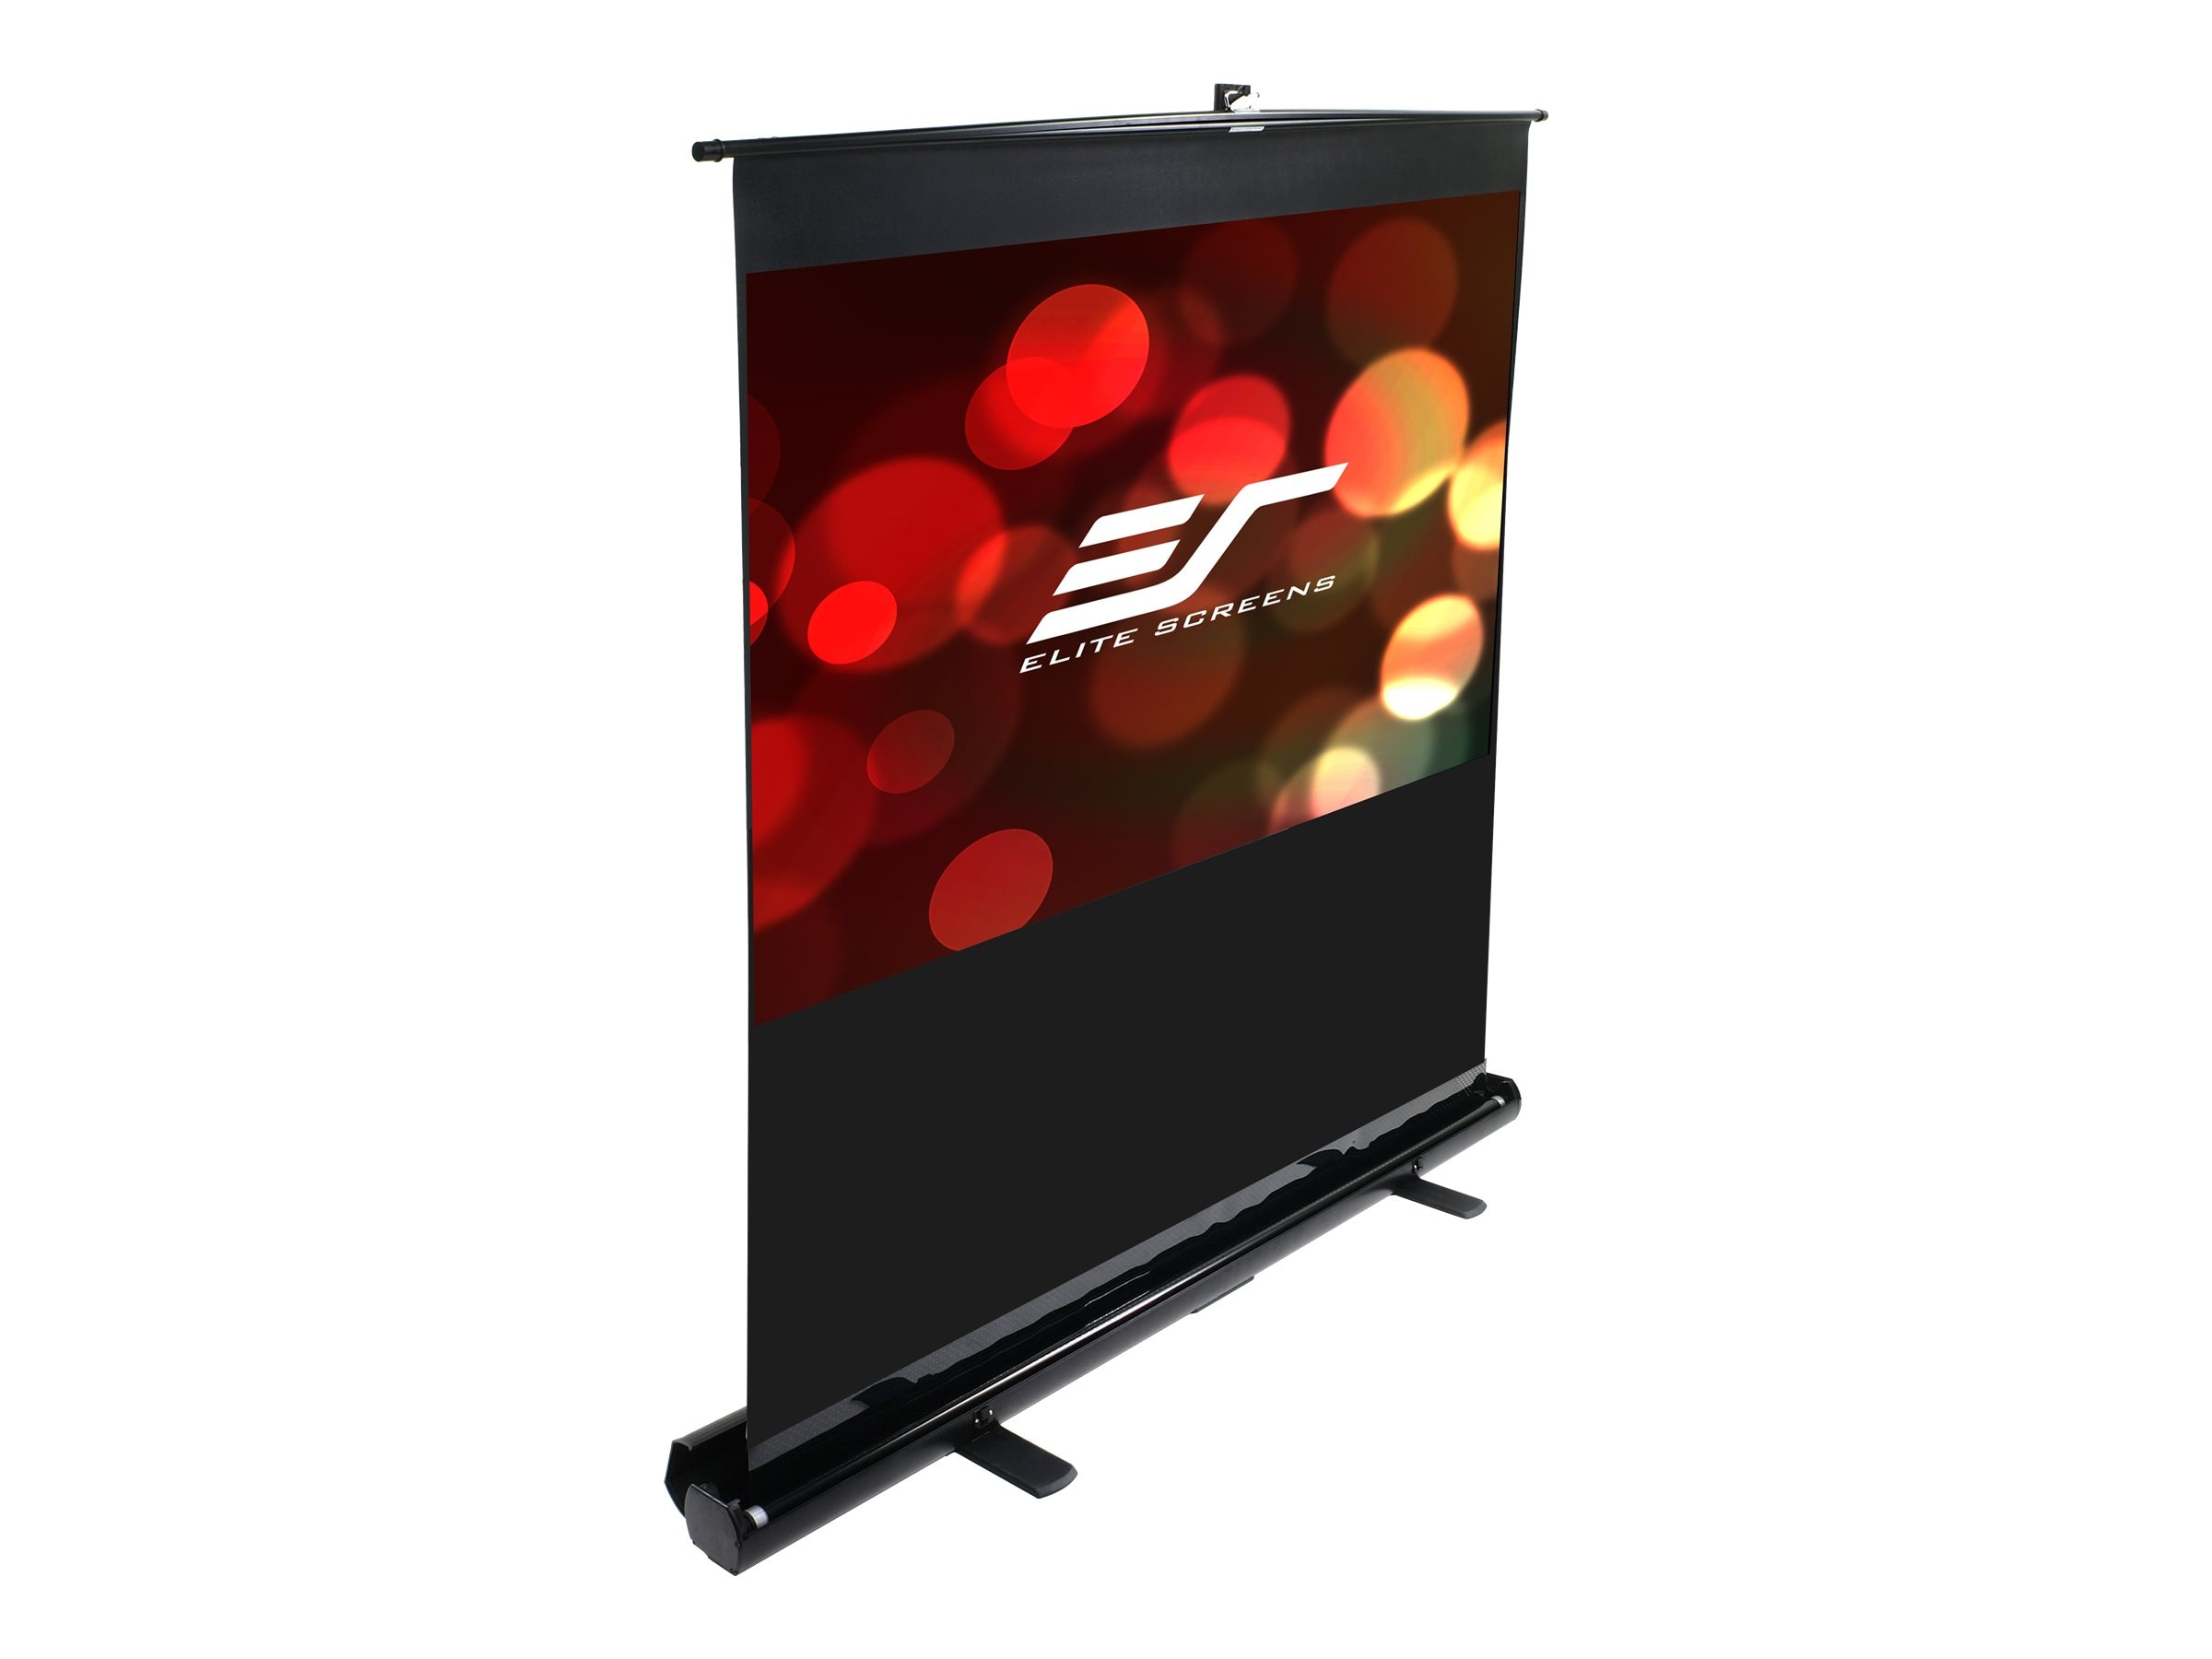 Elite ezCinema Projection Screen, MaxWhite, 16:10, 80, F80NWX, 16264385, Projector Screens